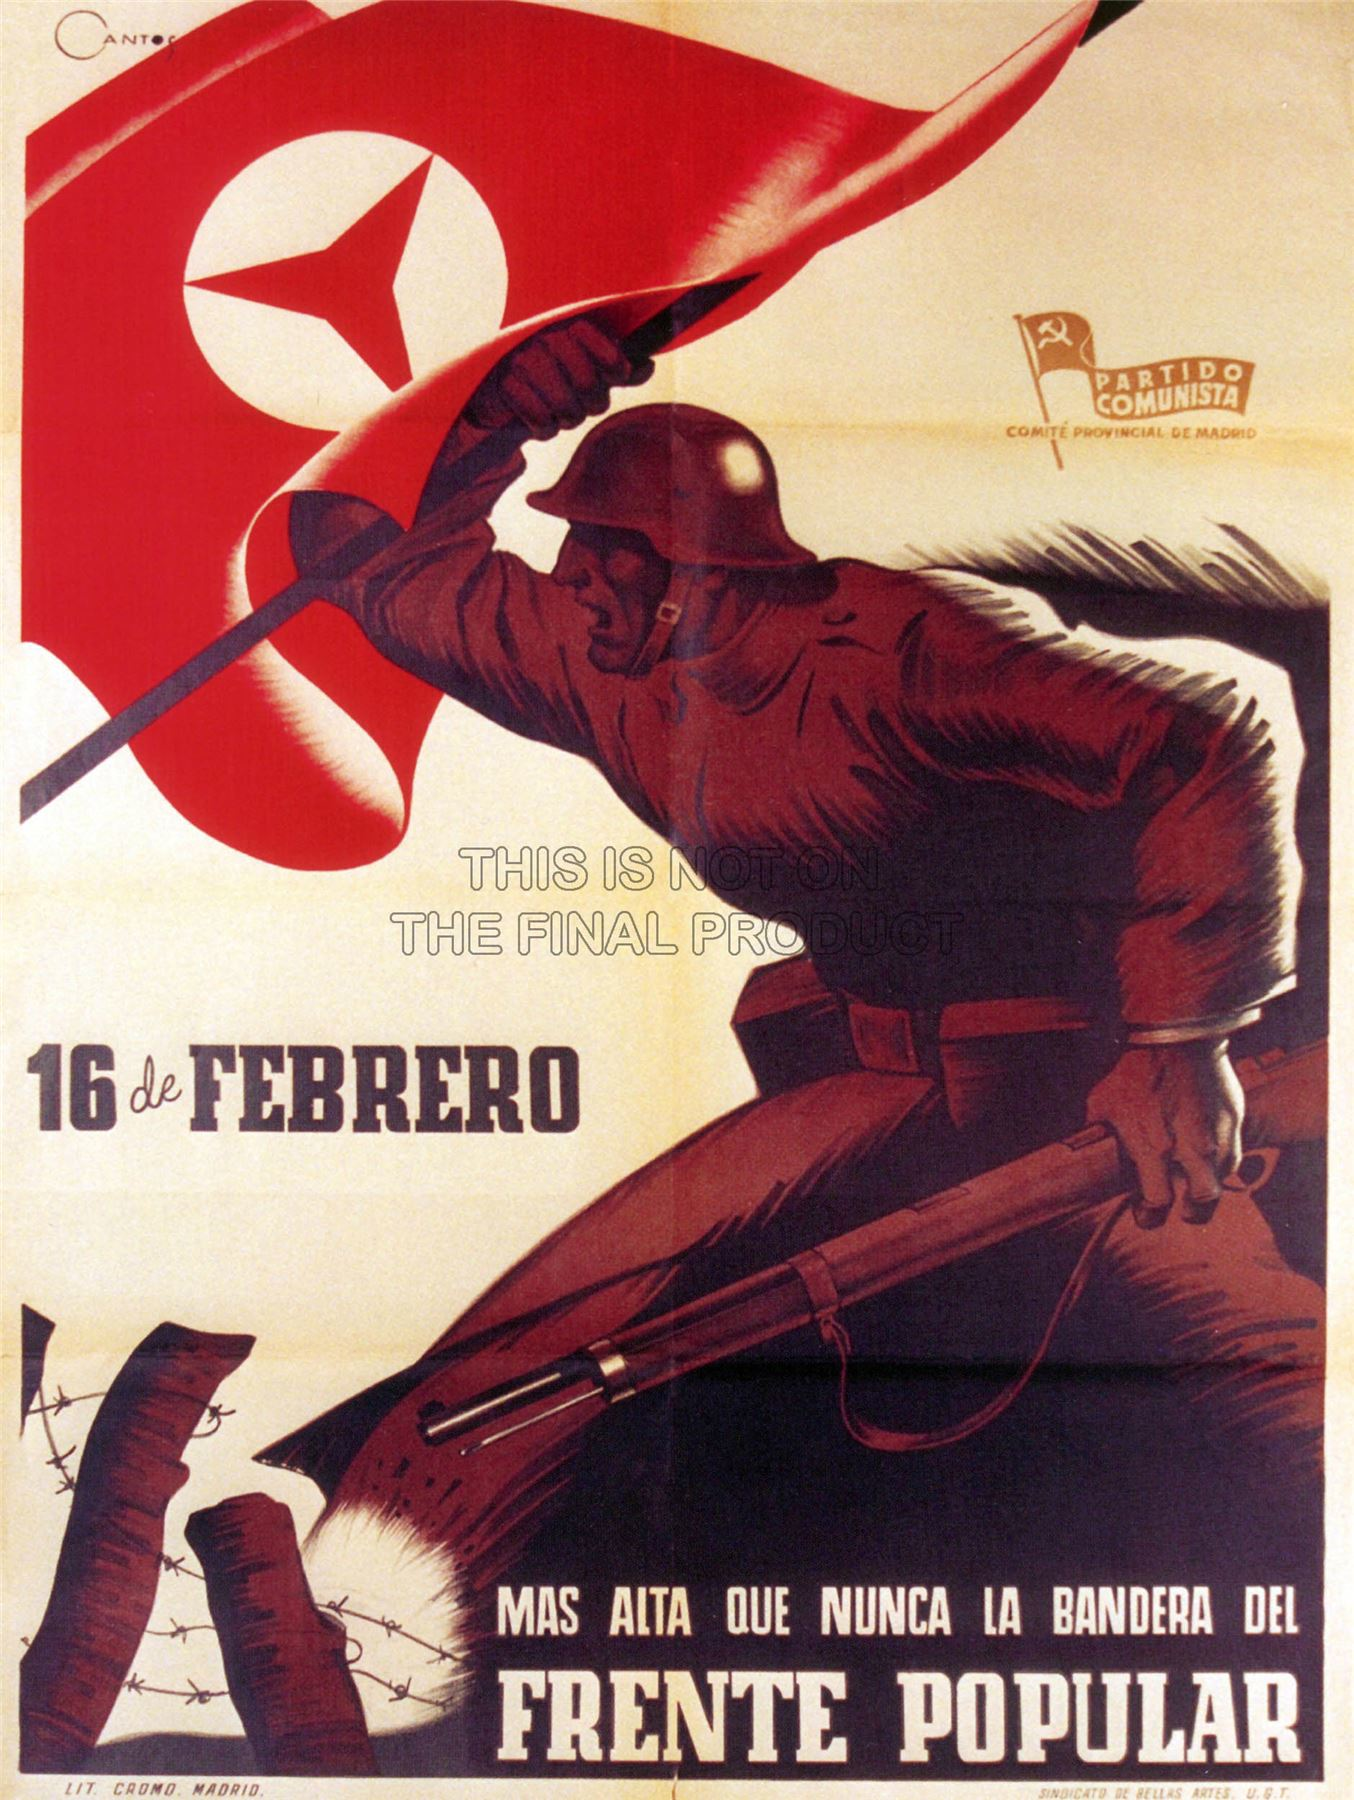 1930 s spanish civil war popular front poster